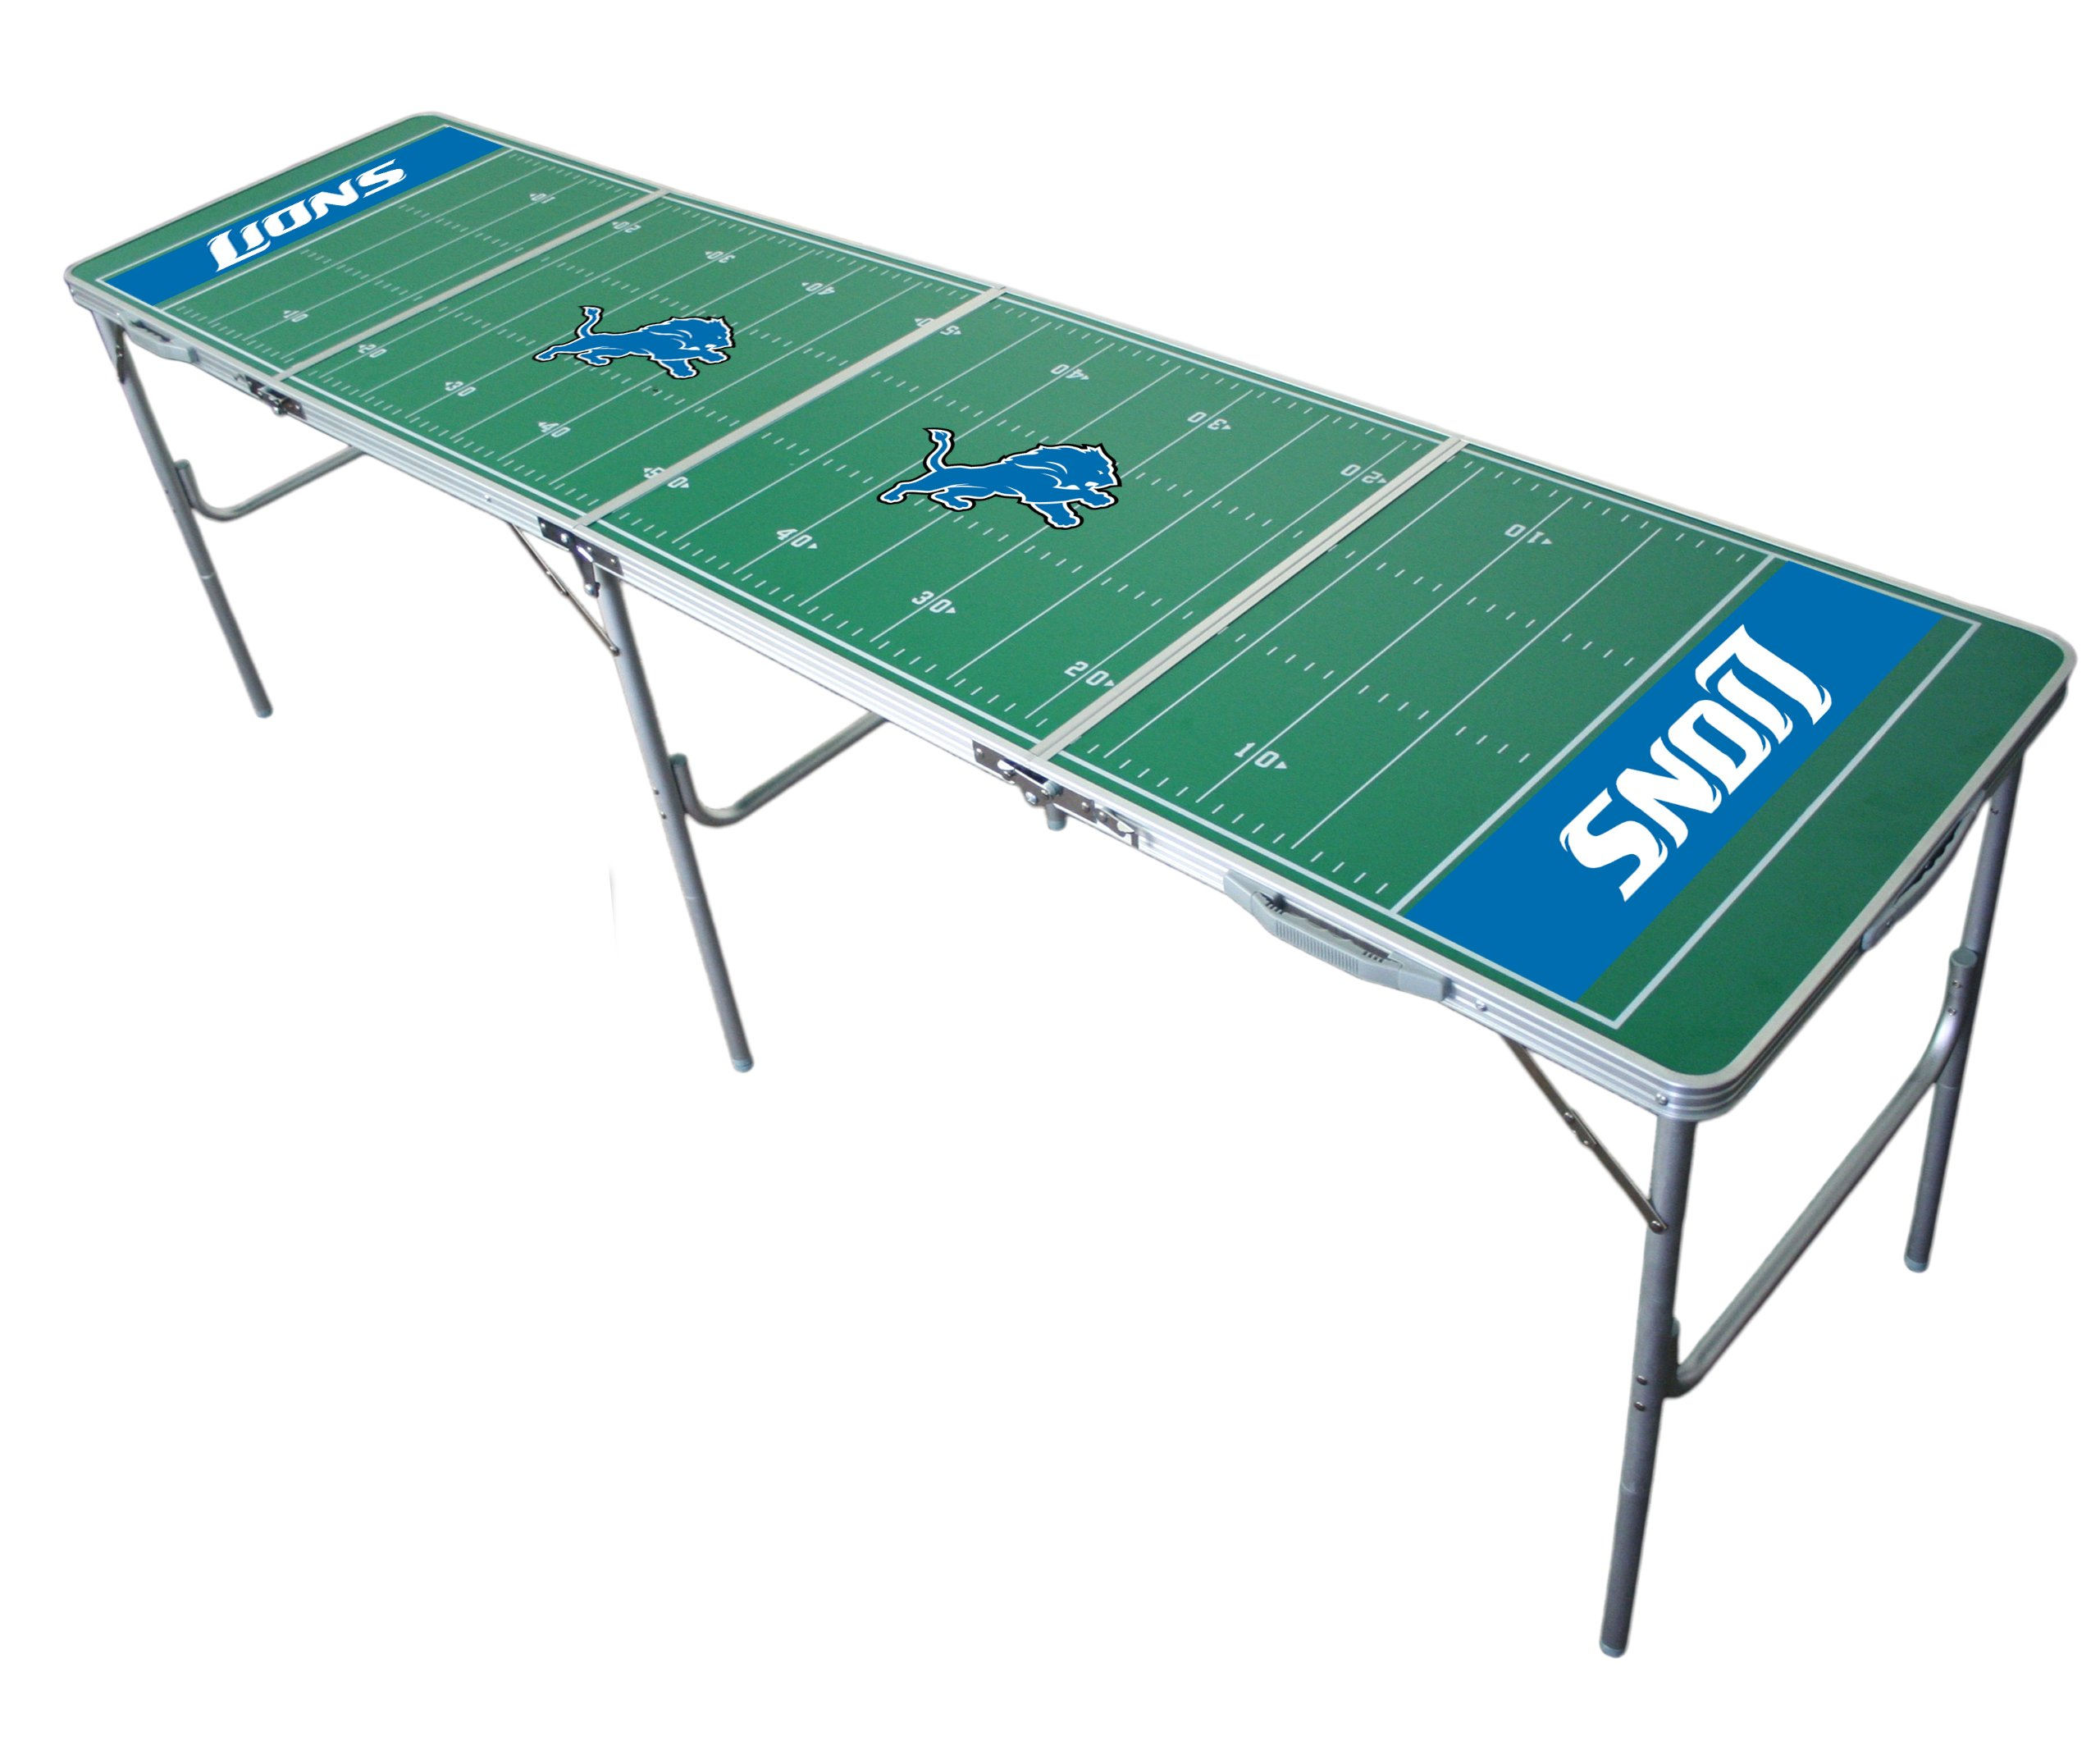 Detroit Lions 2x8 Tailgate Table by Wild Sports by Wild Sports